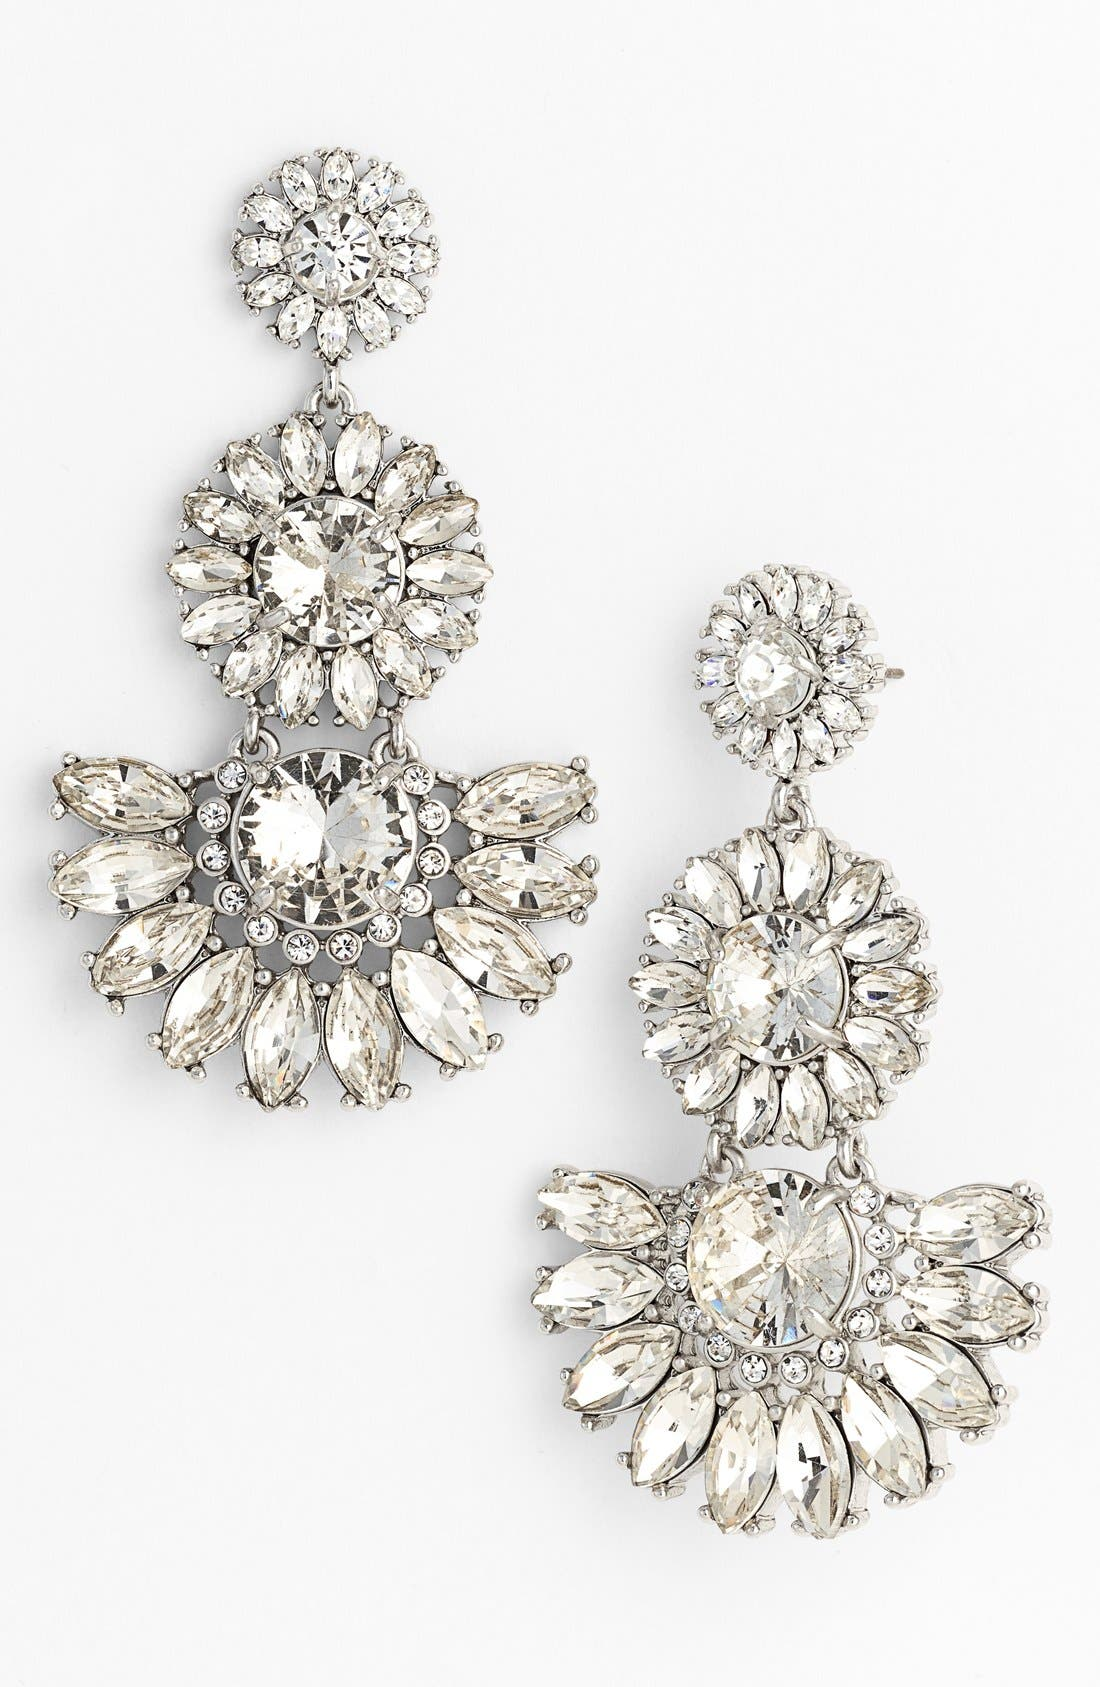 Alternate Image 1 Selected - kate spade new york 'estate garden' crystal drop earrings